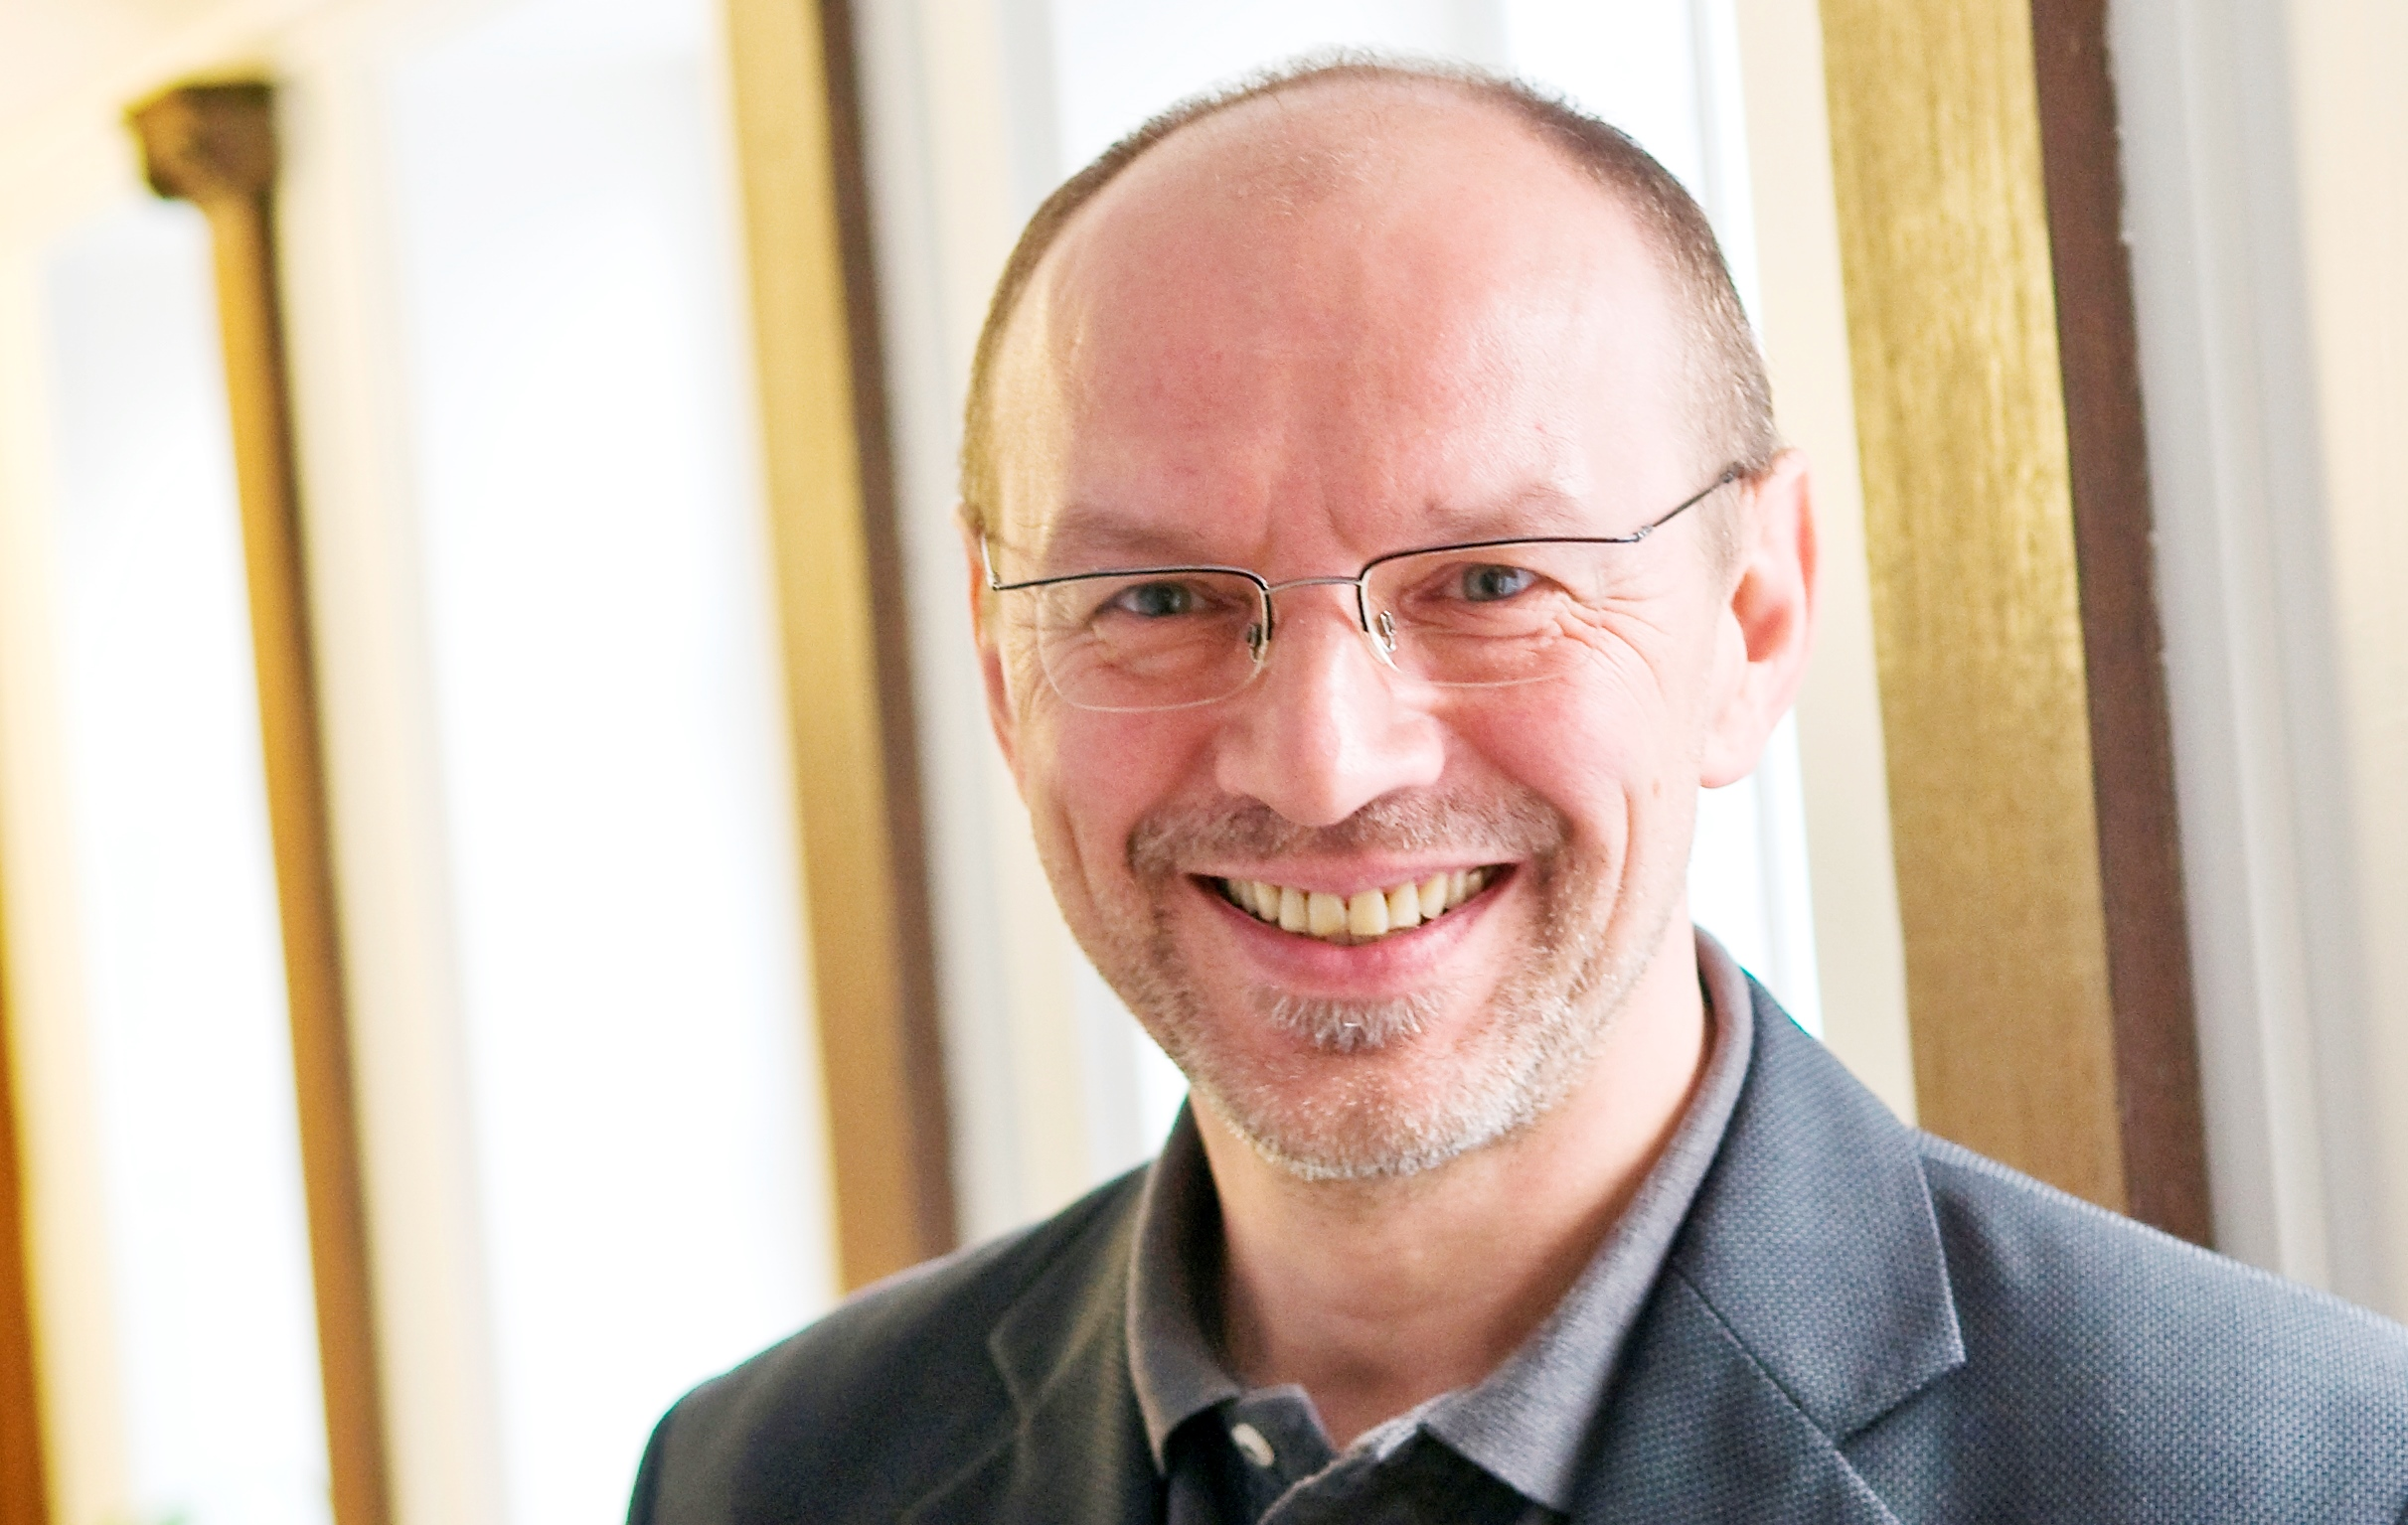 'Made in Europe' has the potential to become a very valuable quality label for AI, says Gerhard Weiss